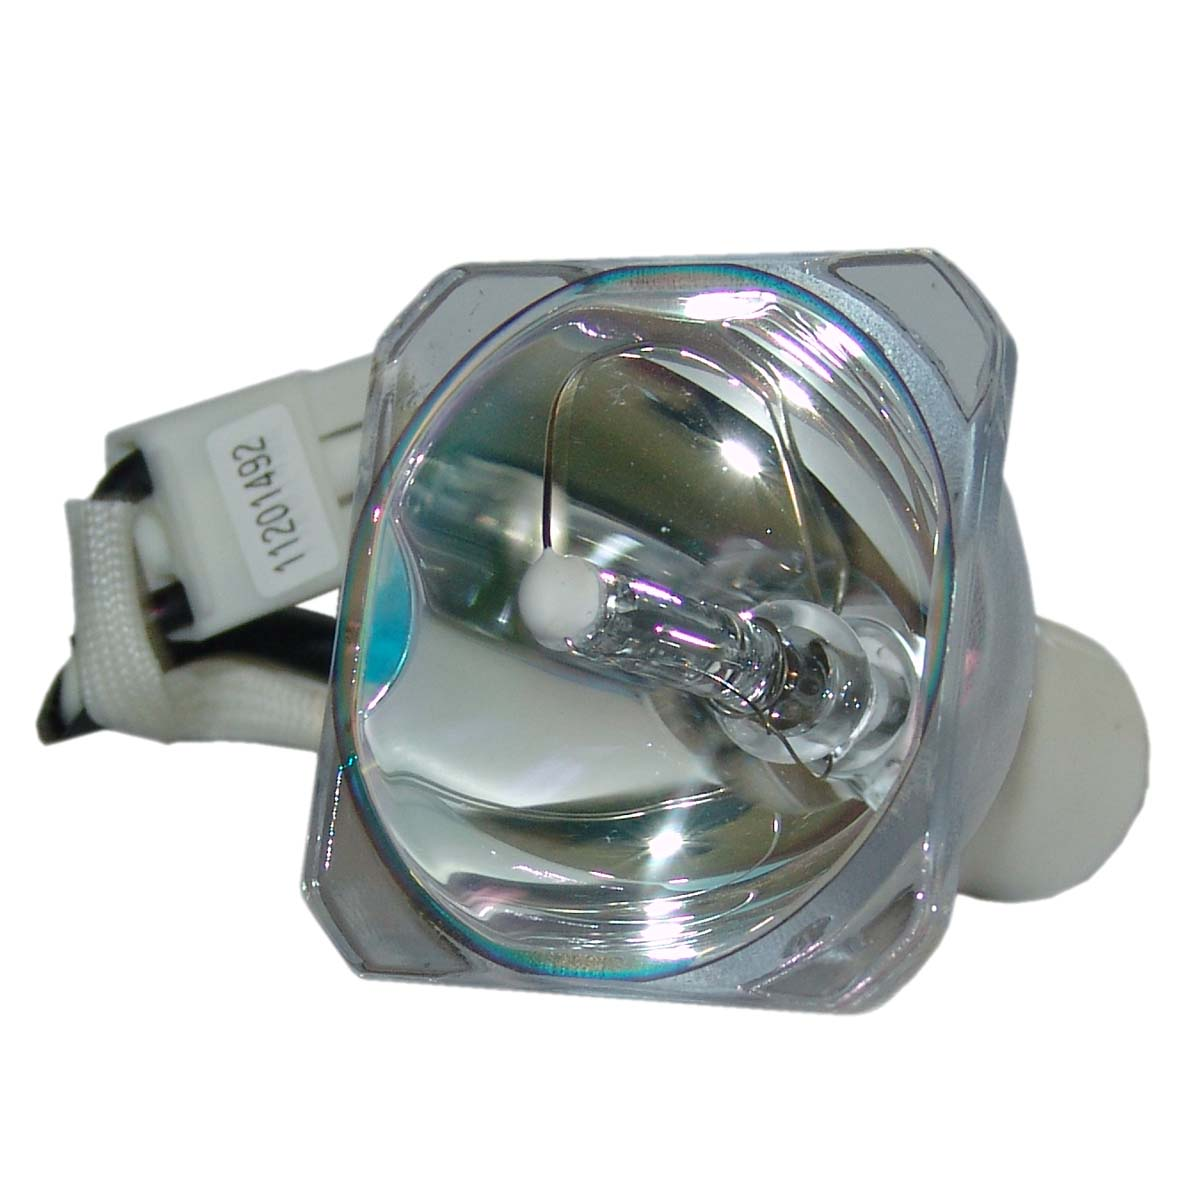 SHP137 5811116310-S for Vivitek D535 D530 D536-3D D537 D537W Projector Bulb Lamp without housing free shipping replacement lamp 5811116310 5811116310 s 5811116310 su 5811116320 s 5811116320 su for vivitek projector